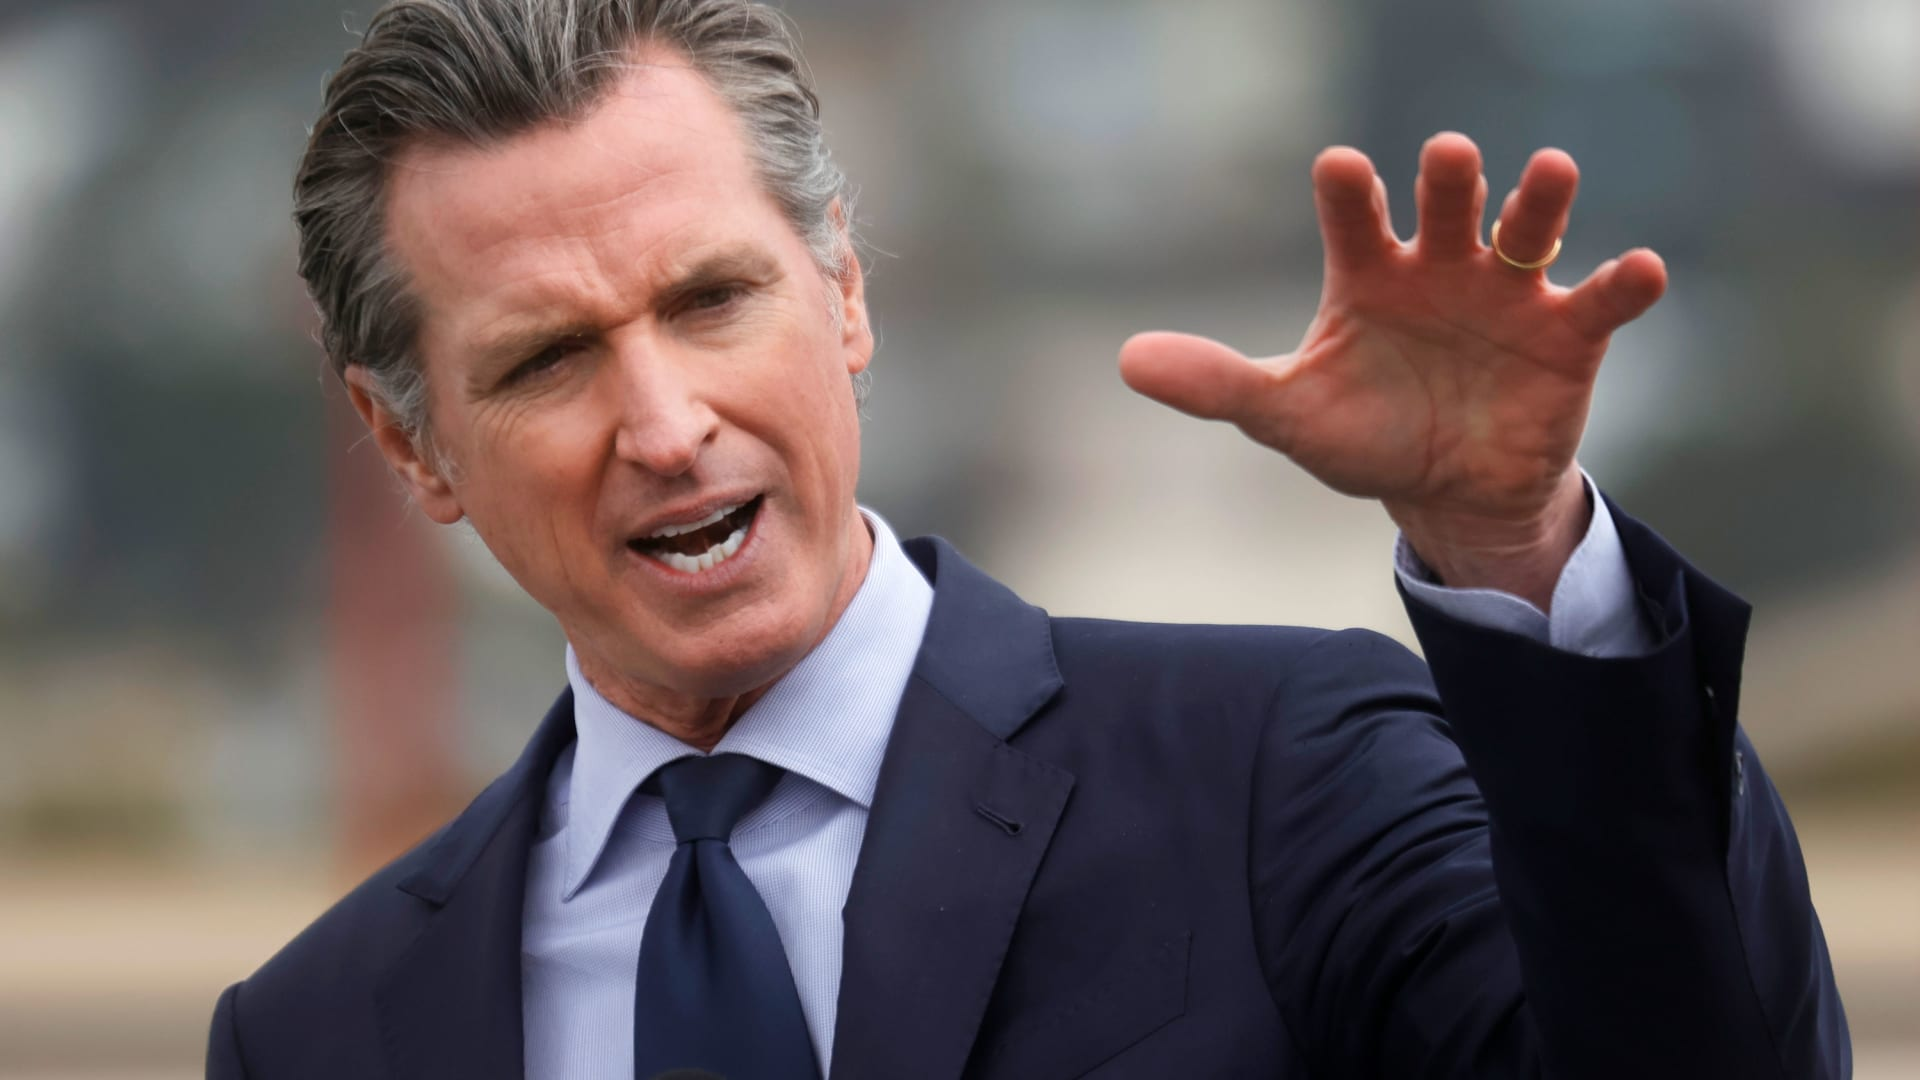 California Gov. Gavin Newsom speaks during a news conference after touring the vaccination clinic at City College of San Francisco on April 06, 2021 in San Francisco, California.